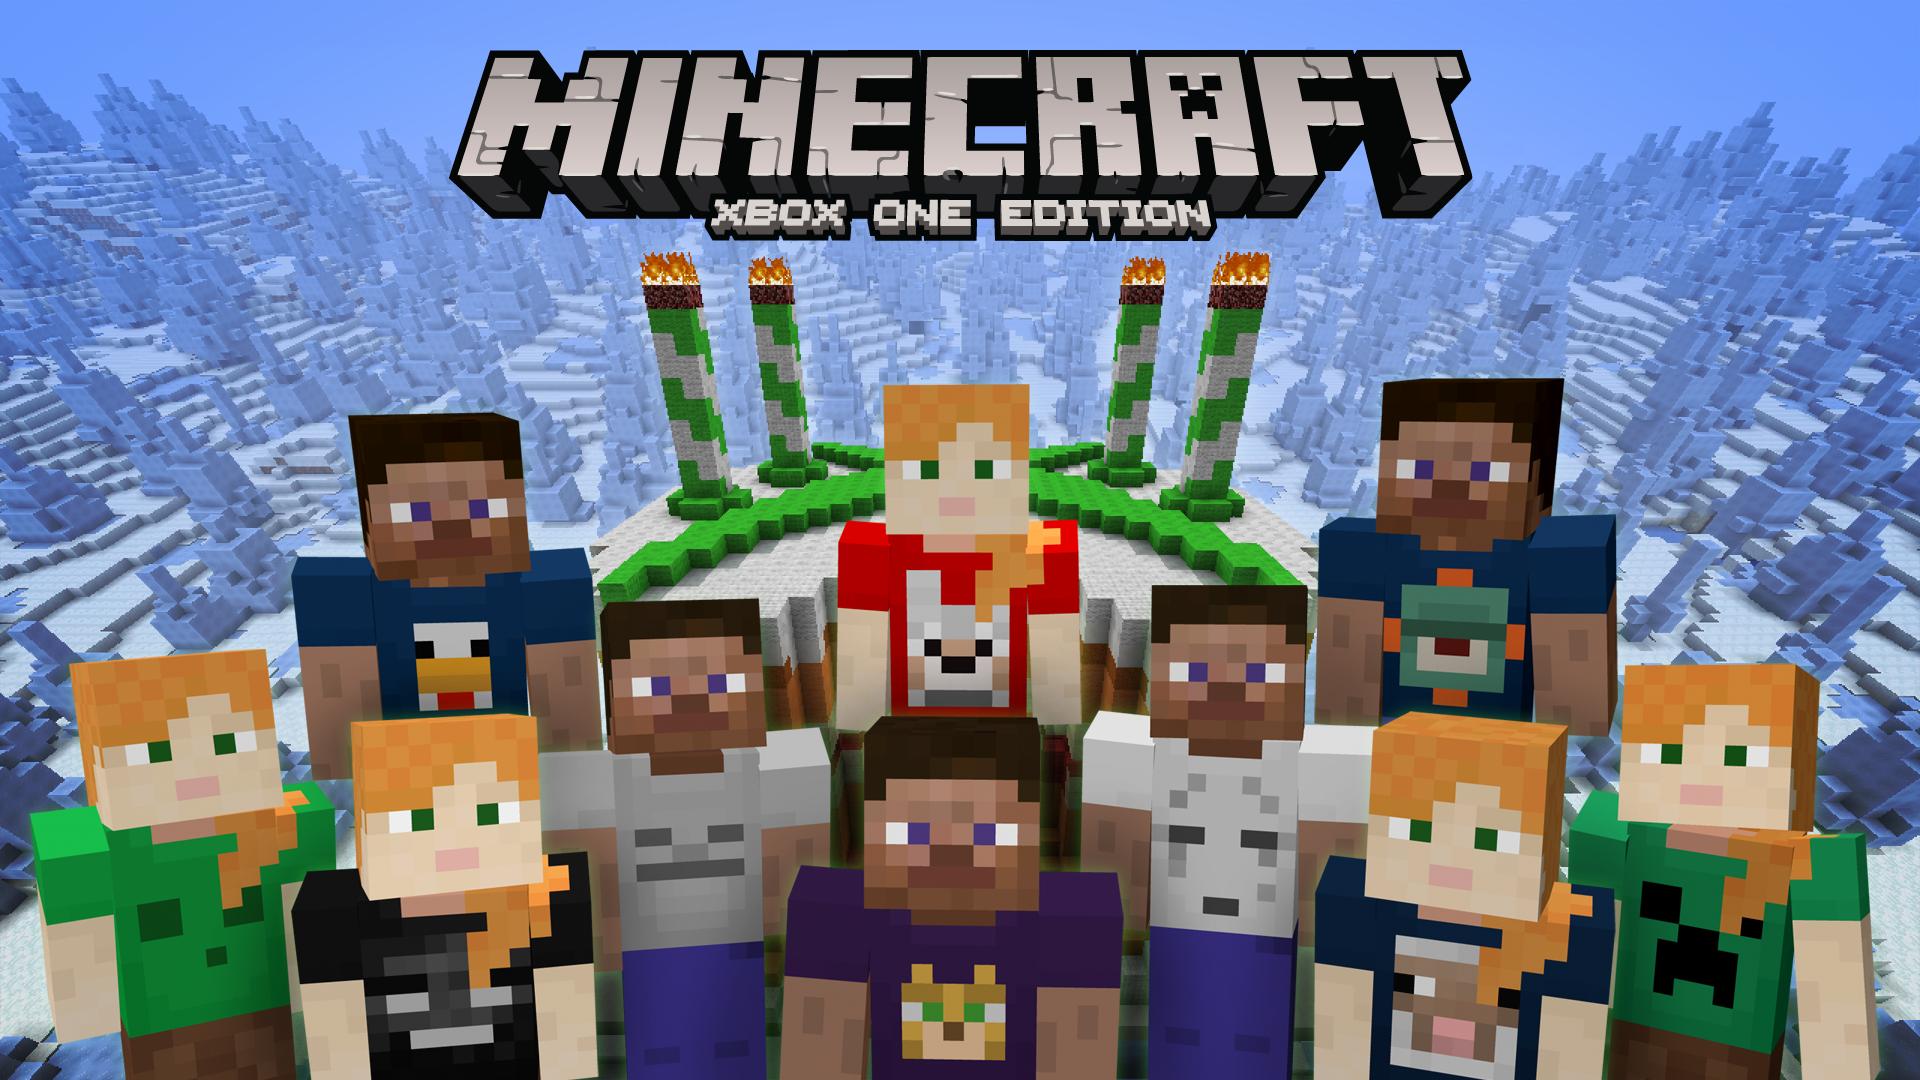 Xbox 360 Minecraft Cover Celebrate Xbox Edition...